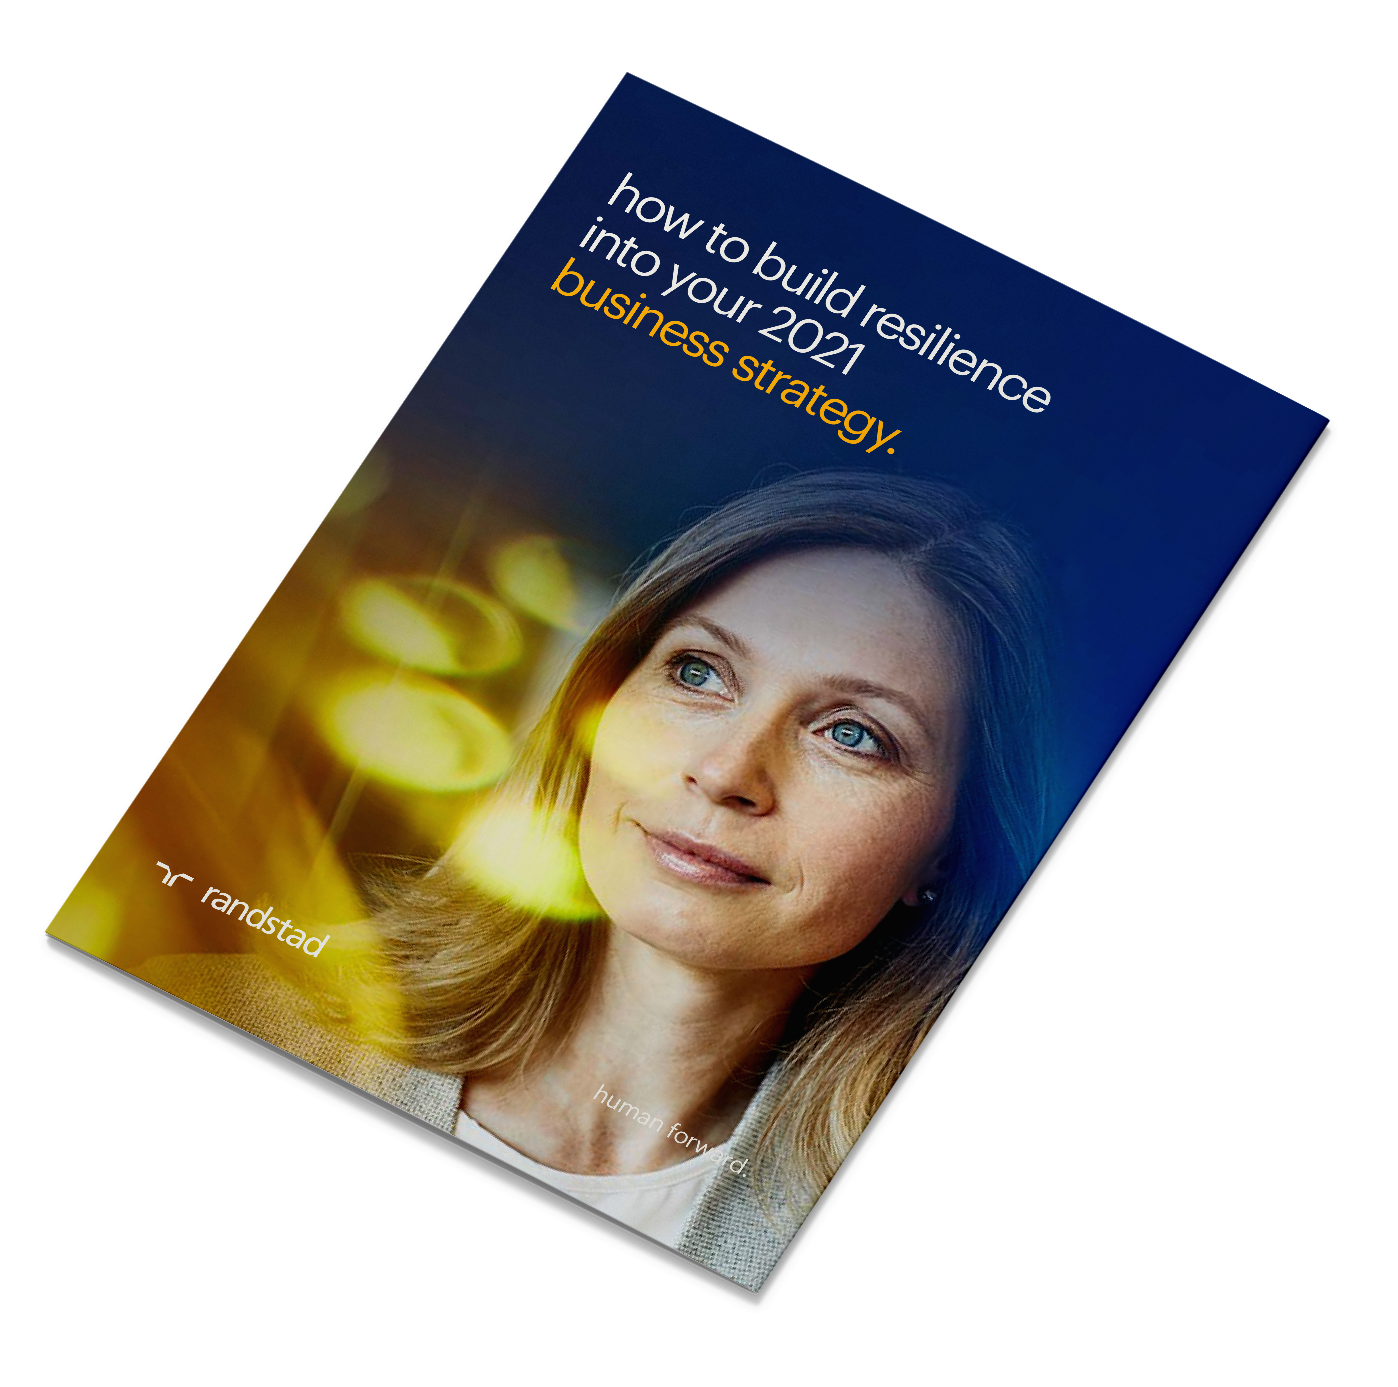 RSH 2713 Mockup Whitepaper How to build resilience into your 2021 business strategy